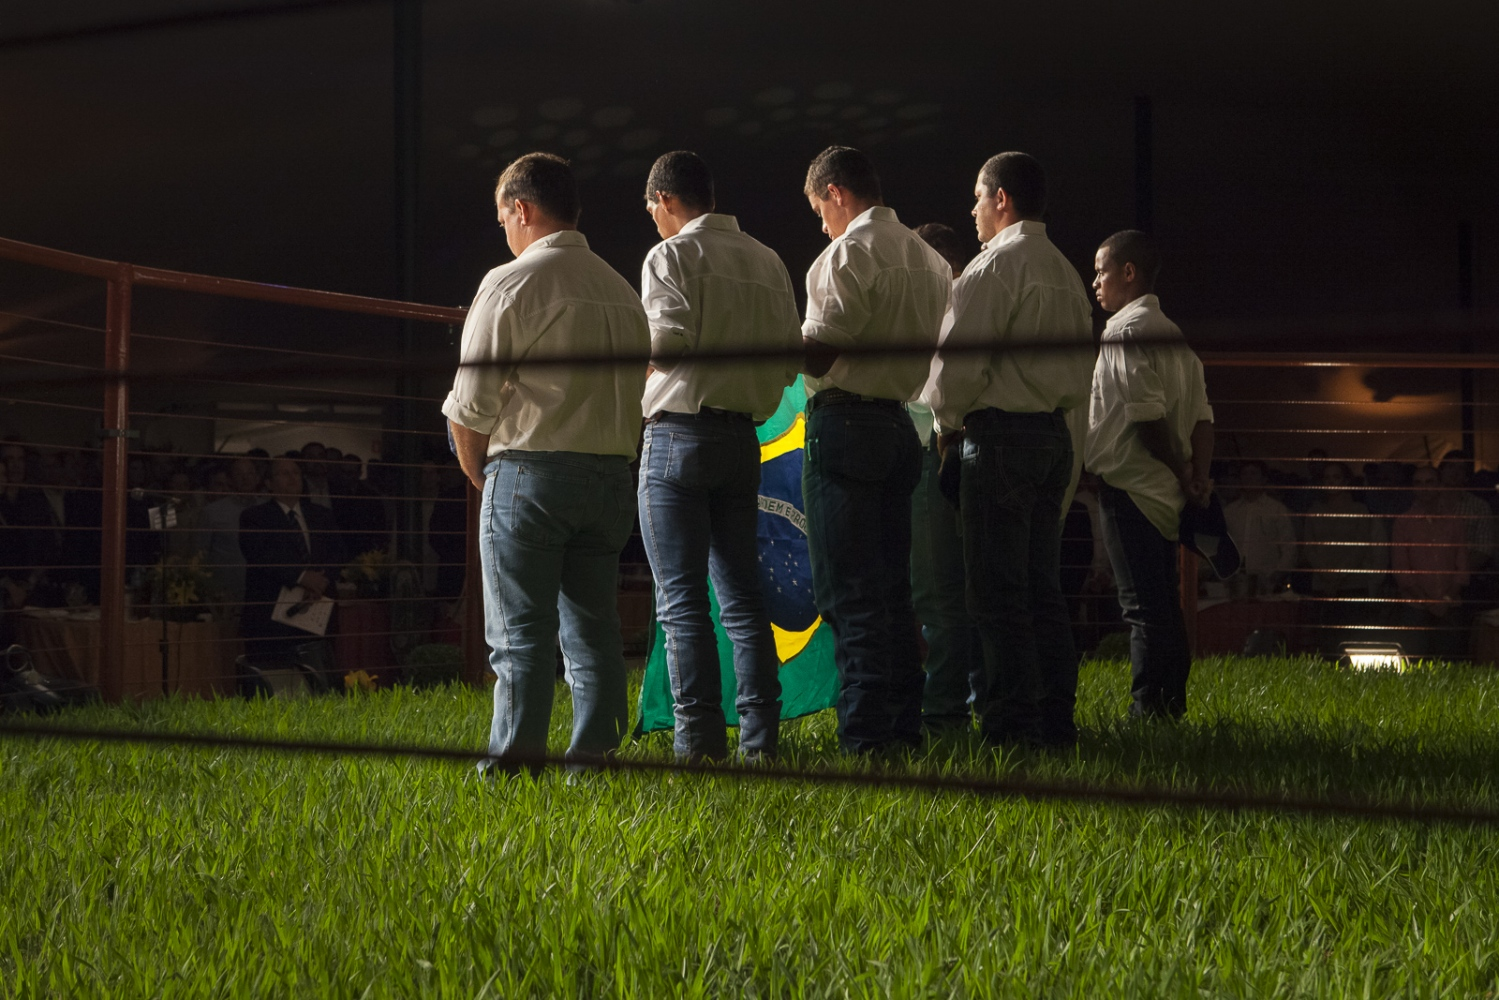 In a conservatif and patriotic ambiance, cowboys sing the national hymn in a private luxury cattle's auction opening during ExpoZebu Cattle Fair.  Uberaba, Brazil, 2013